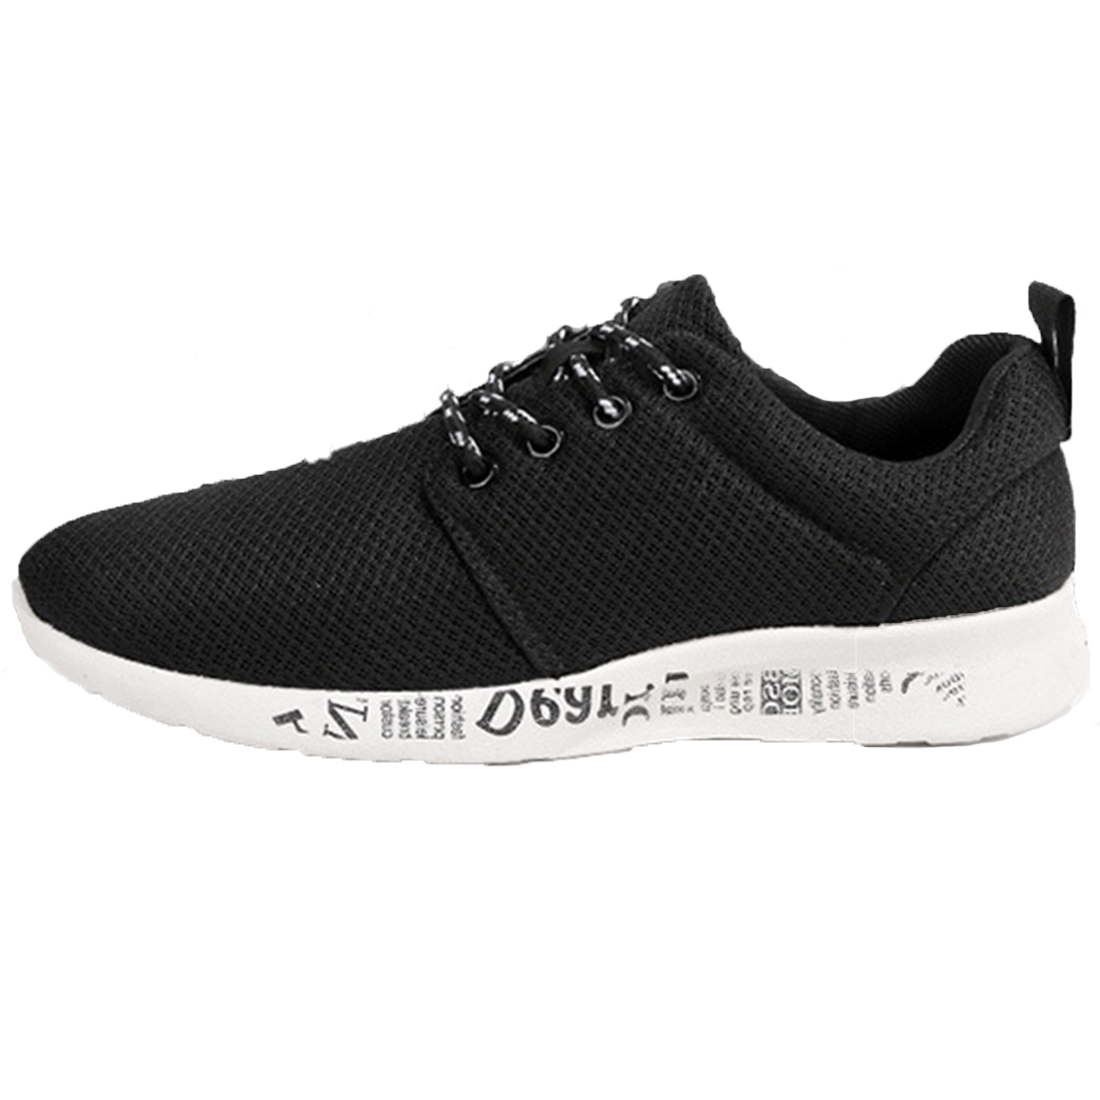 Compare Prices On Huarache Men Online Shopping Buy Low Price